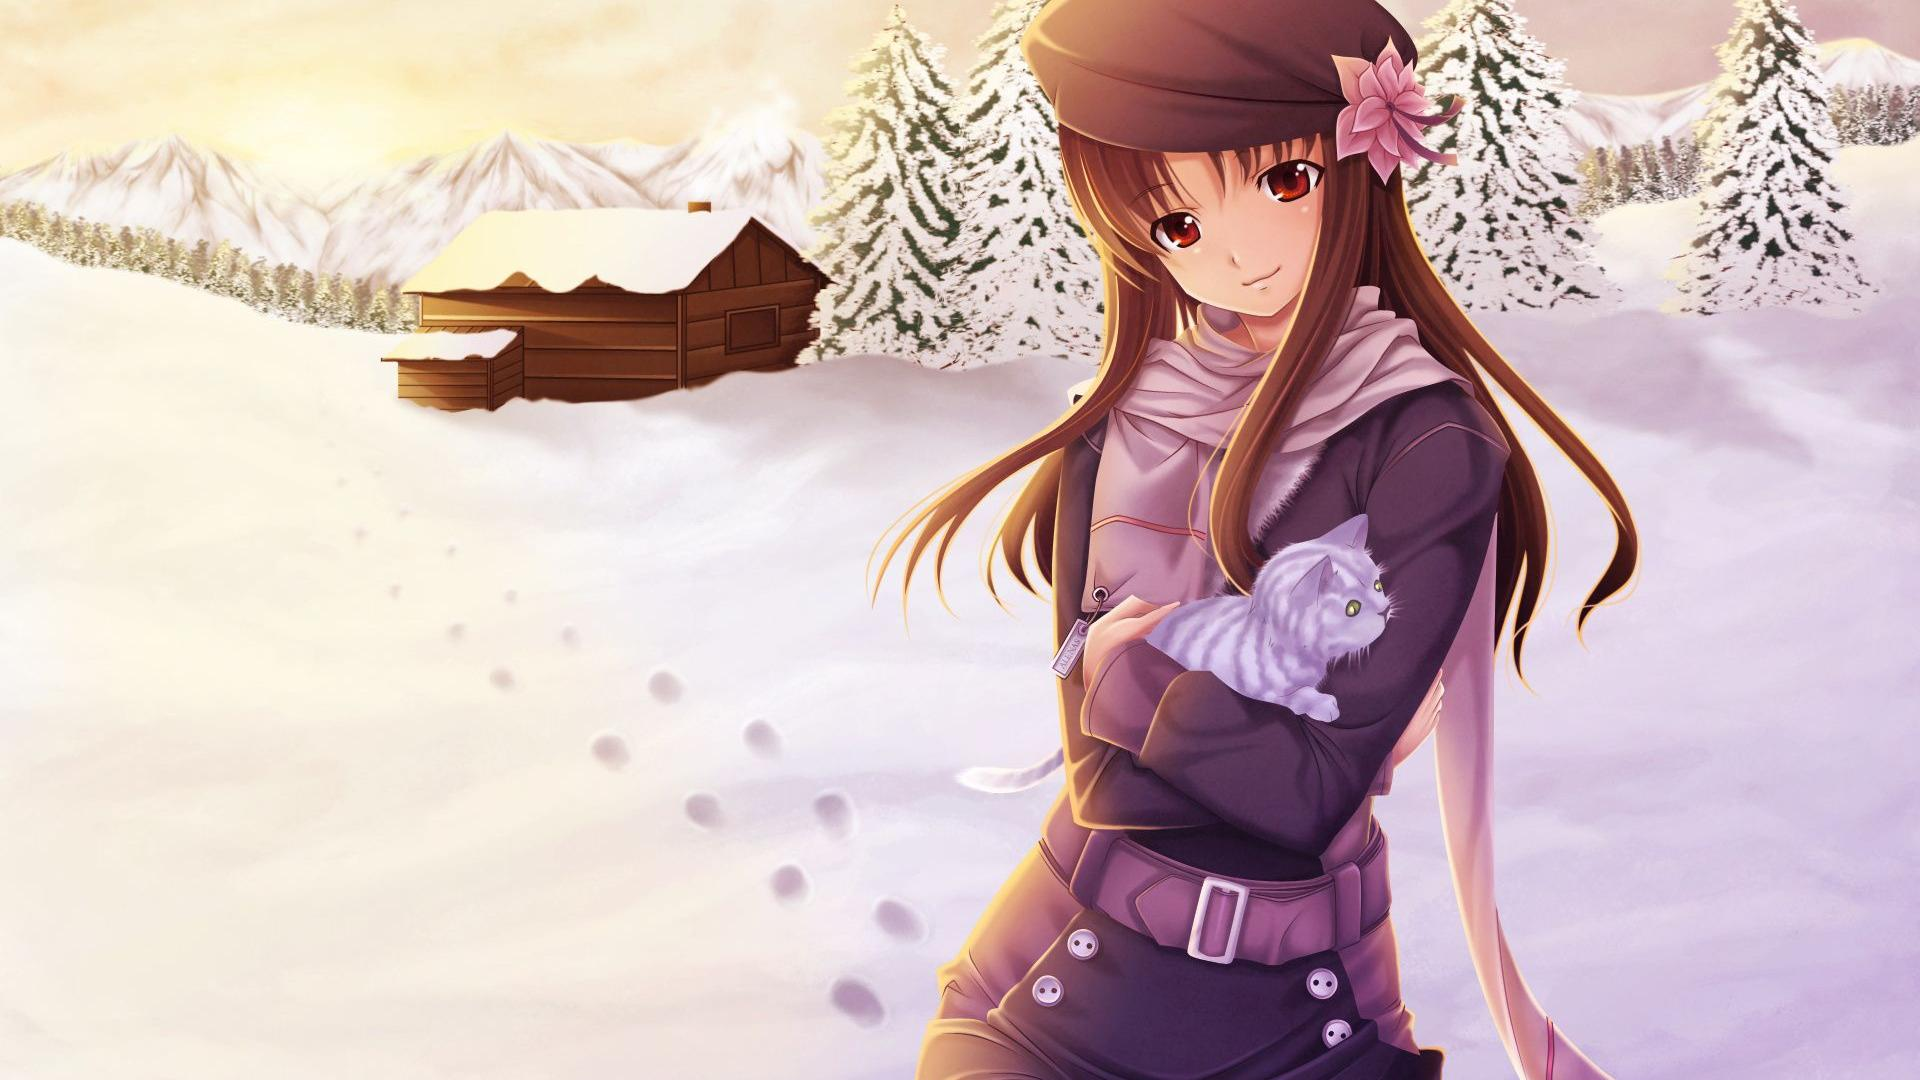 Anime Girl Winter Snow HD Wallpaper of Anime   hdwallpaper2013com 1920x1080